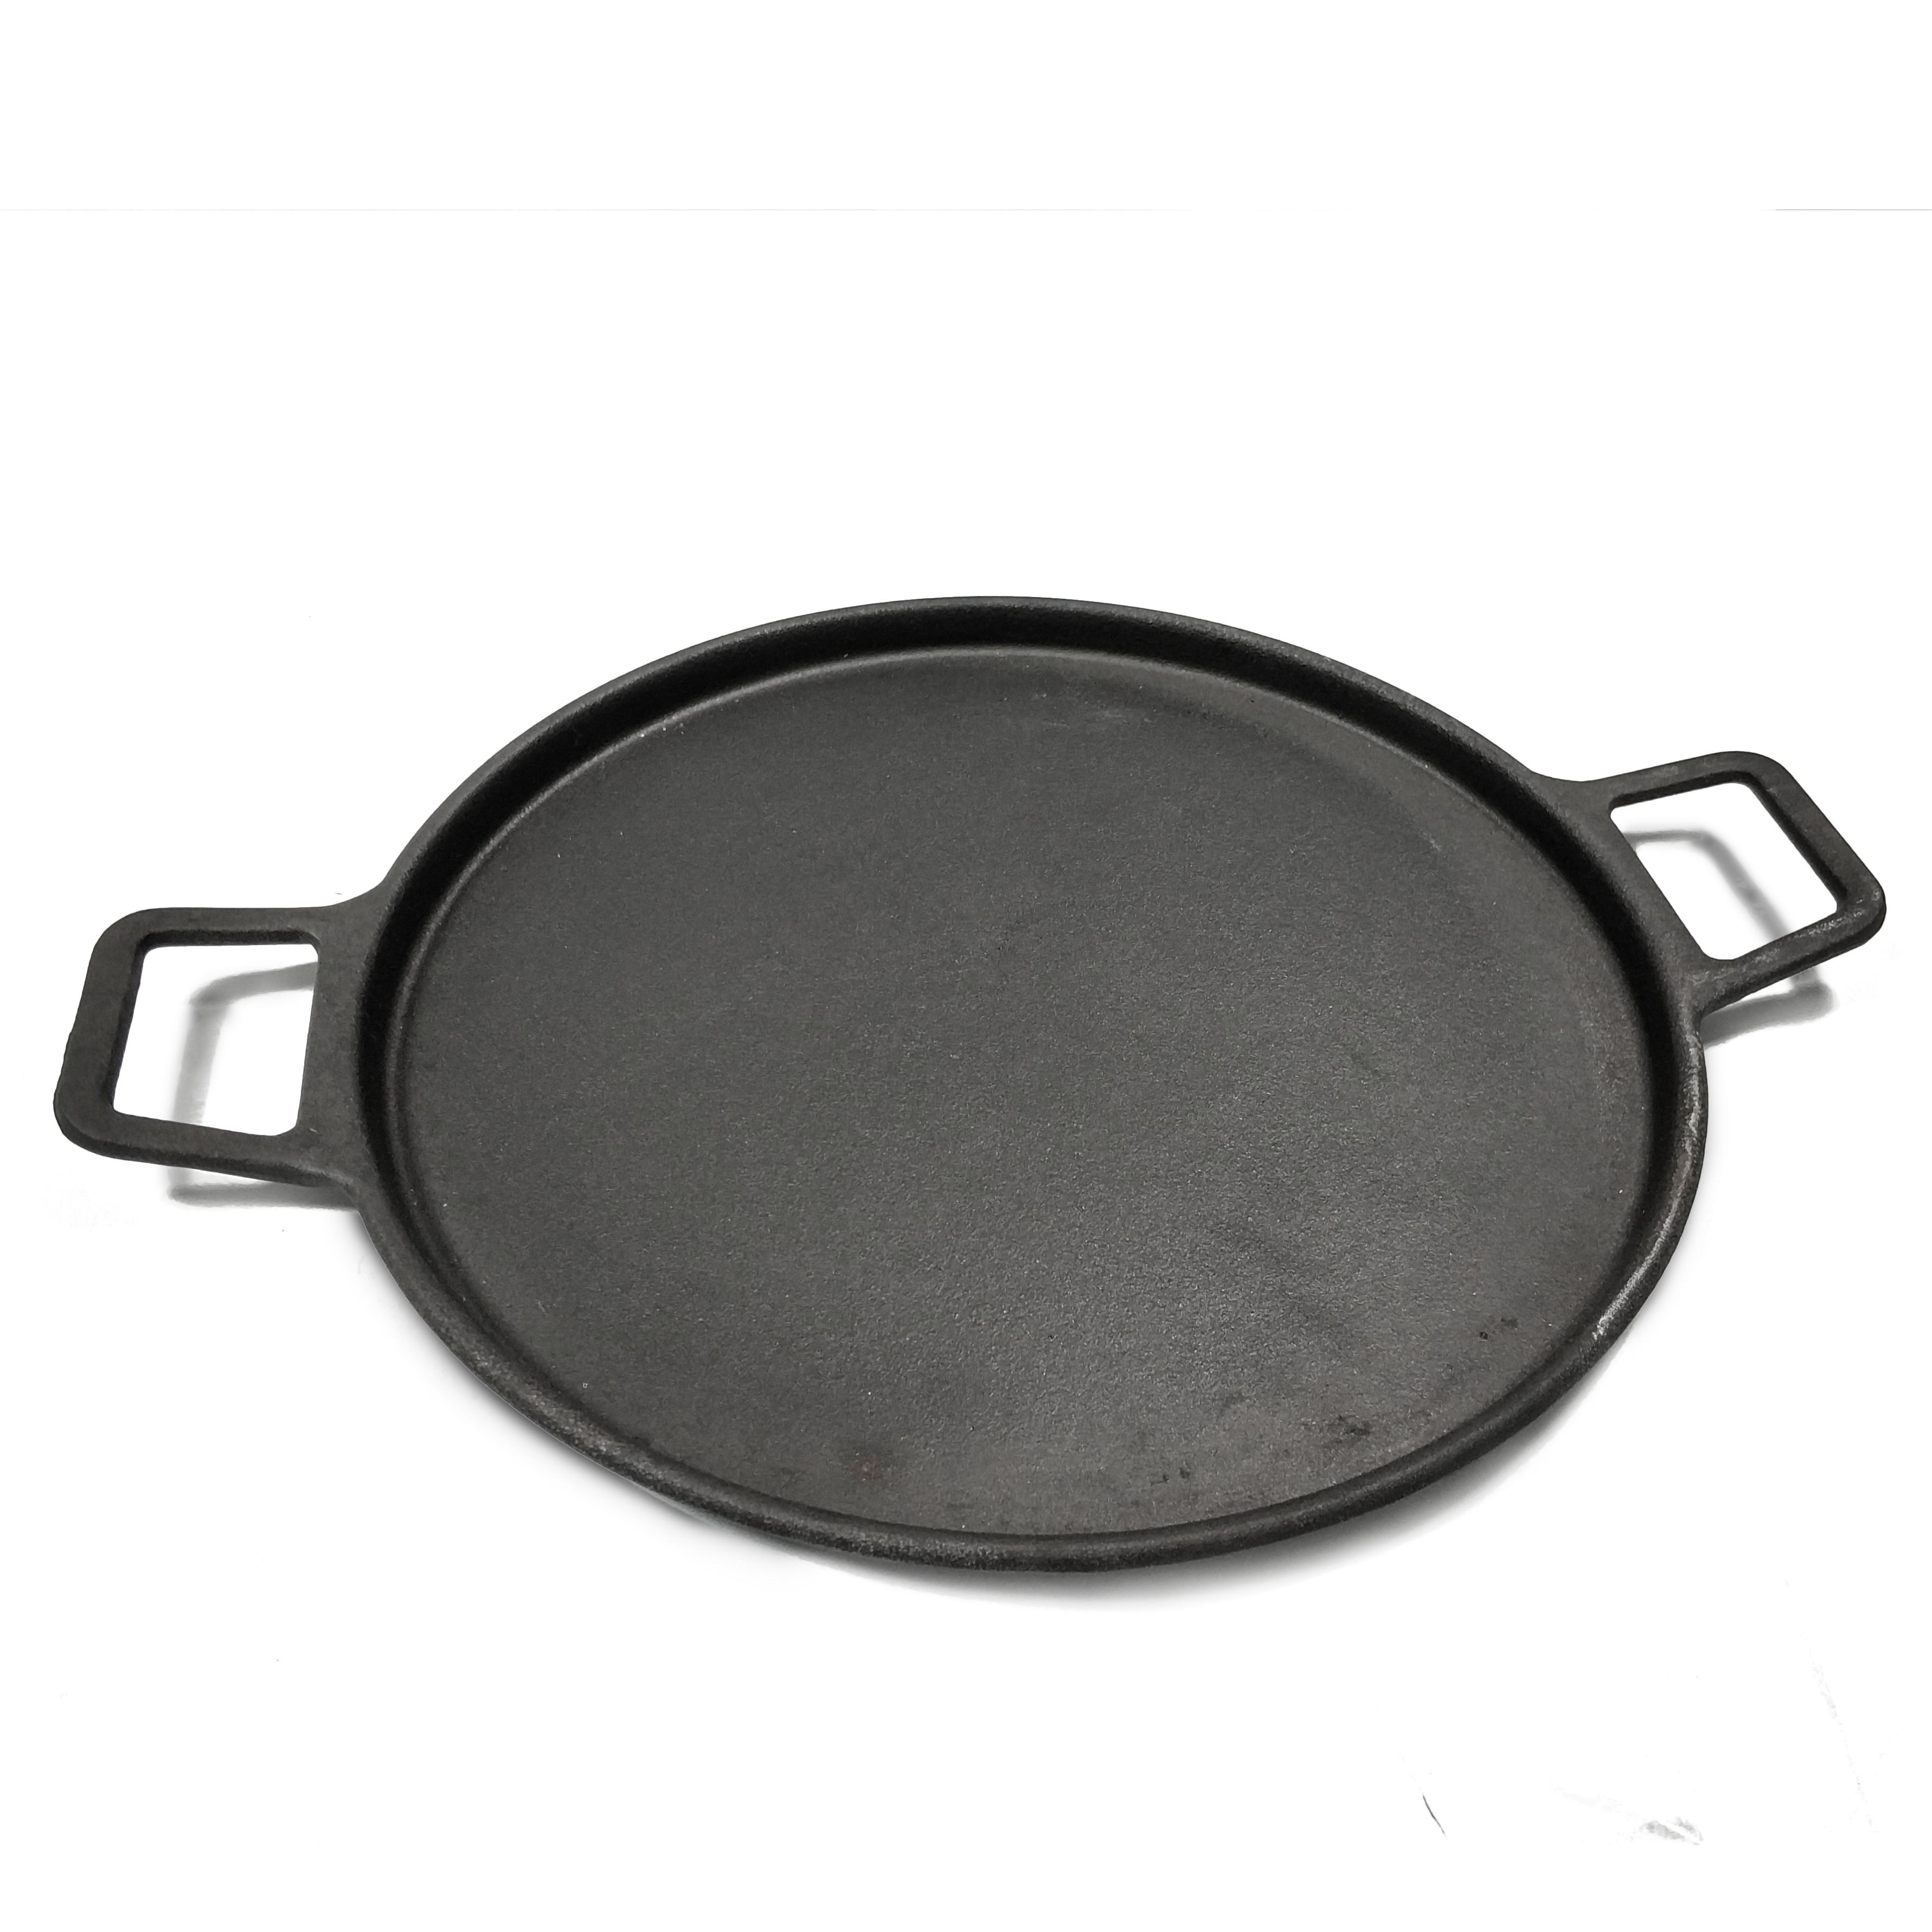 Heavy duty cast iron grill oven griddle BBQ roasting pan round big kitchen skillet for pancake pizza steak with lift handle